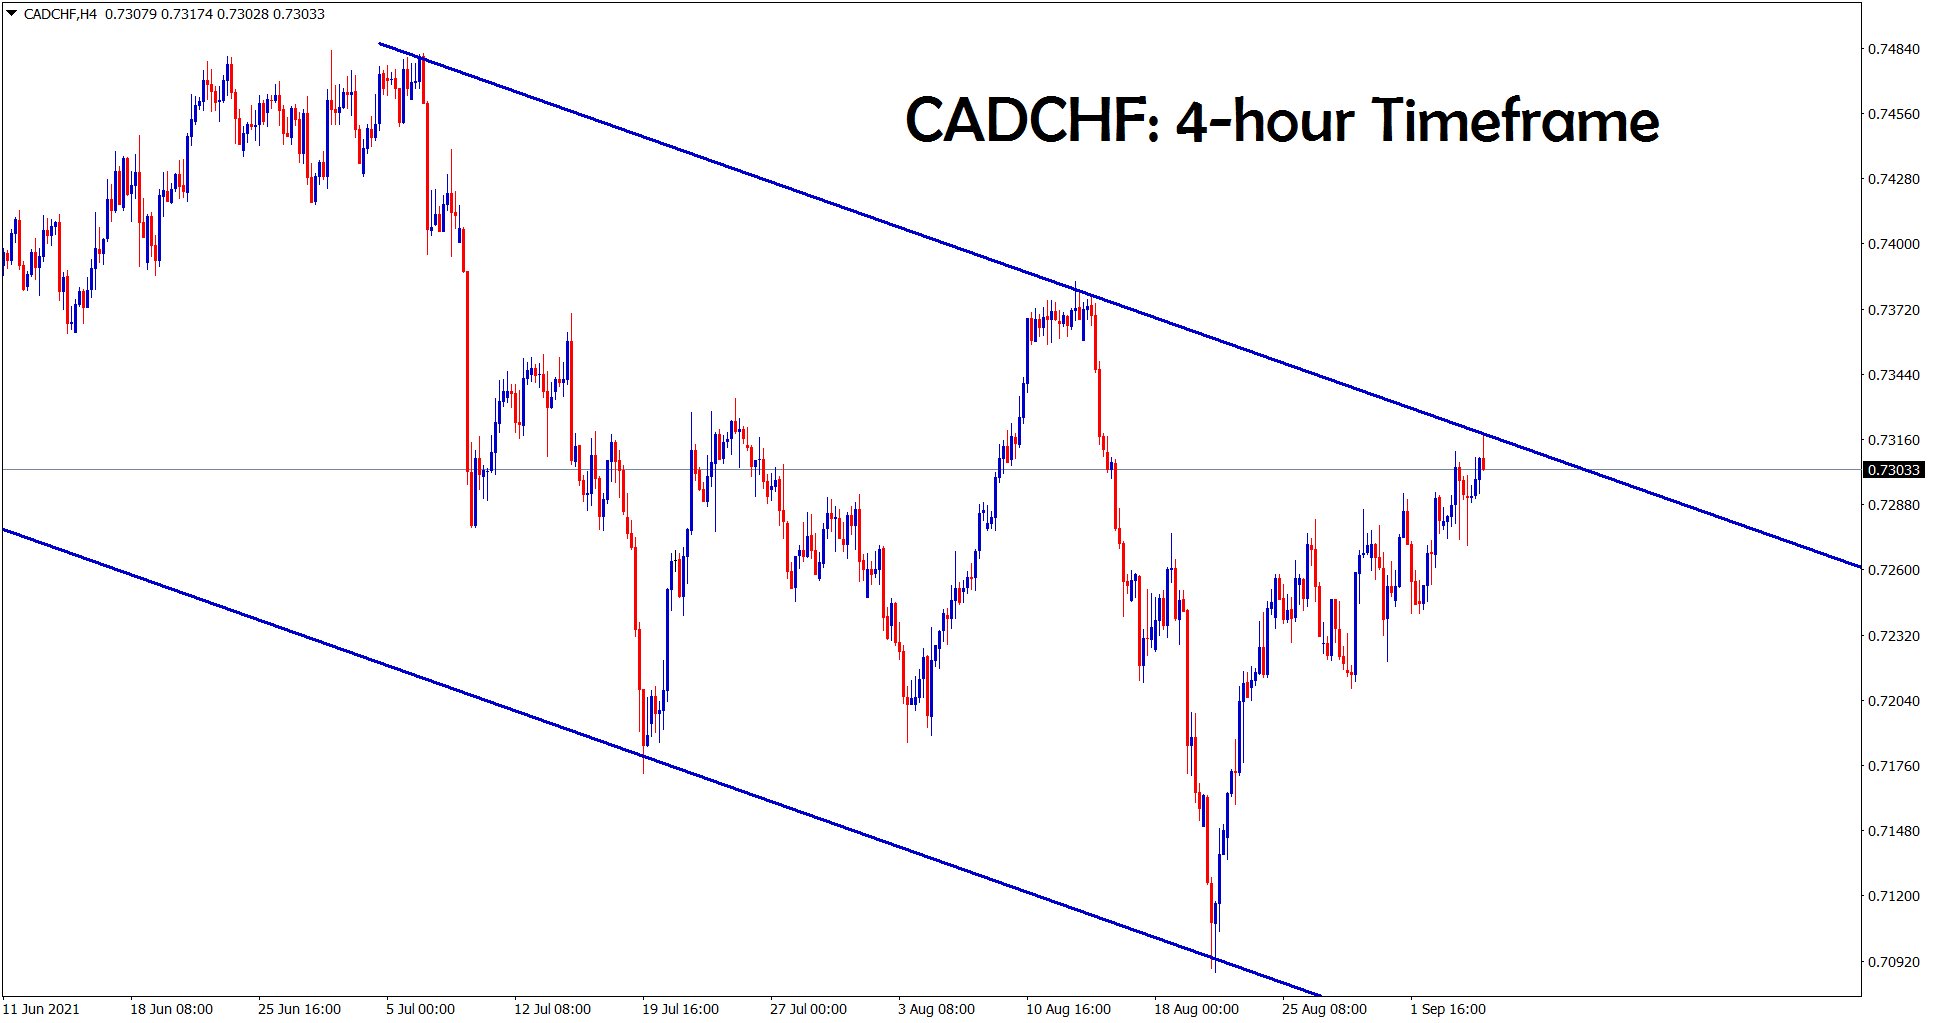 CADCHF hits the lower high level of a descending channel in the 4 hour timeframe